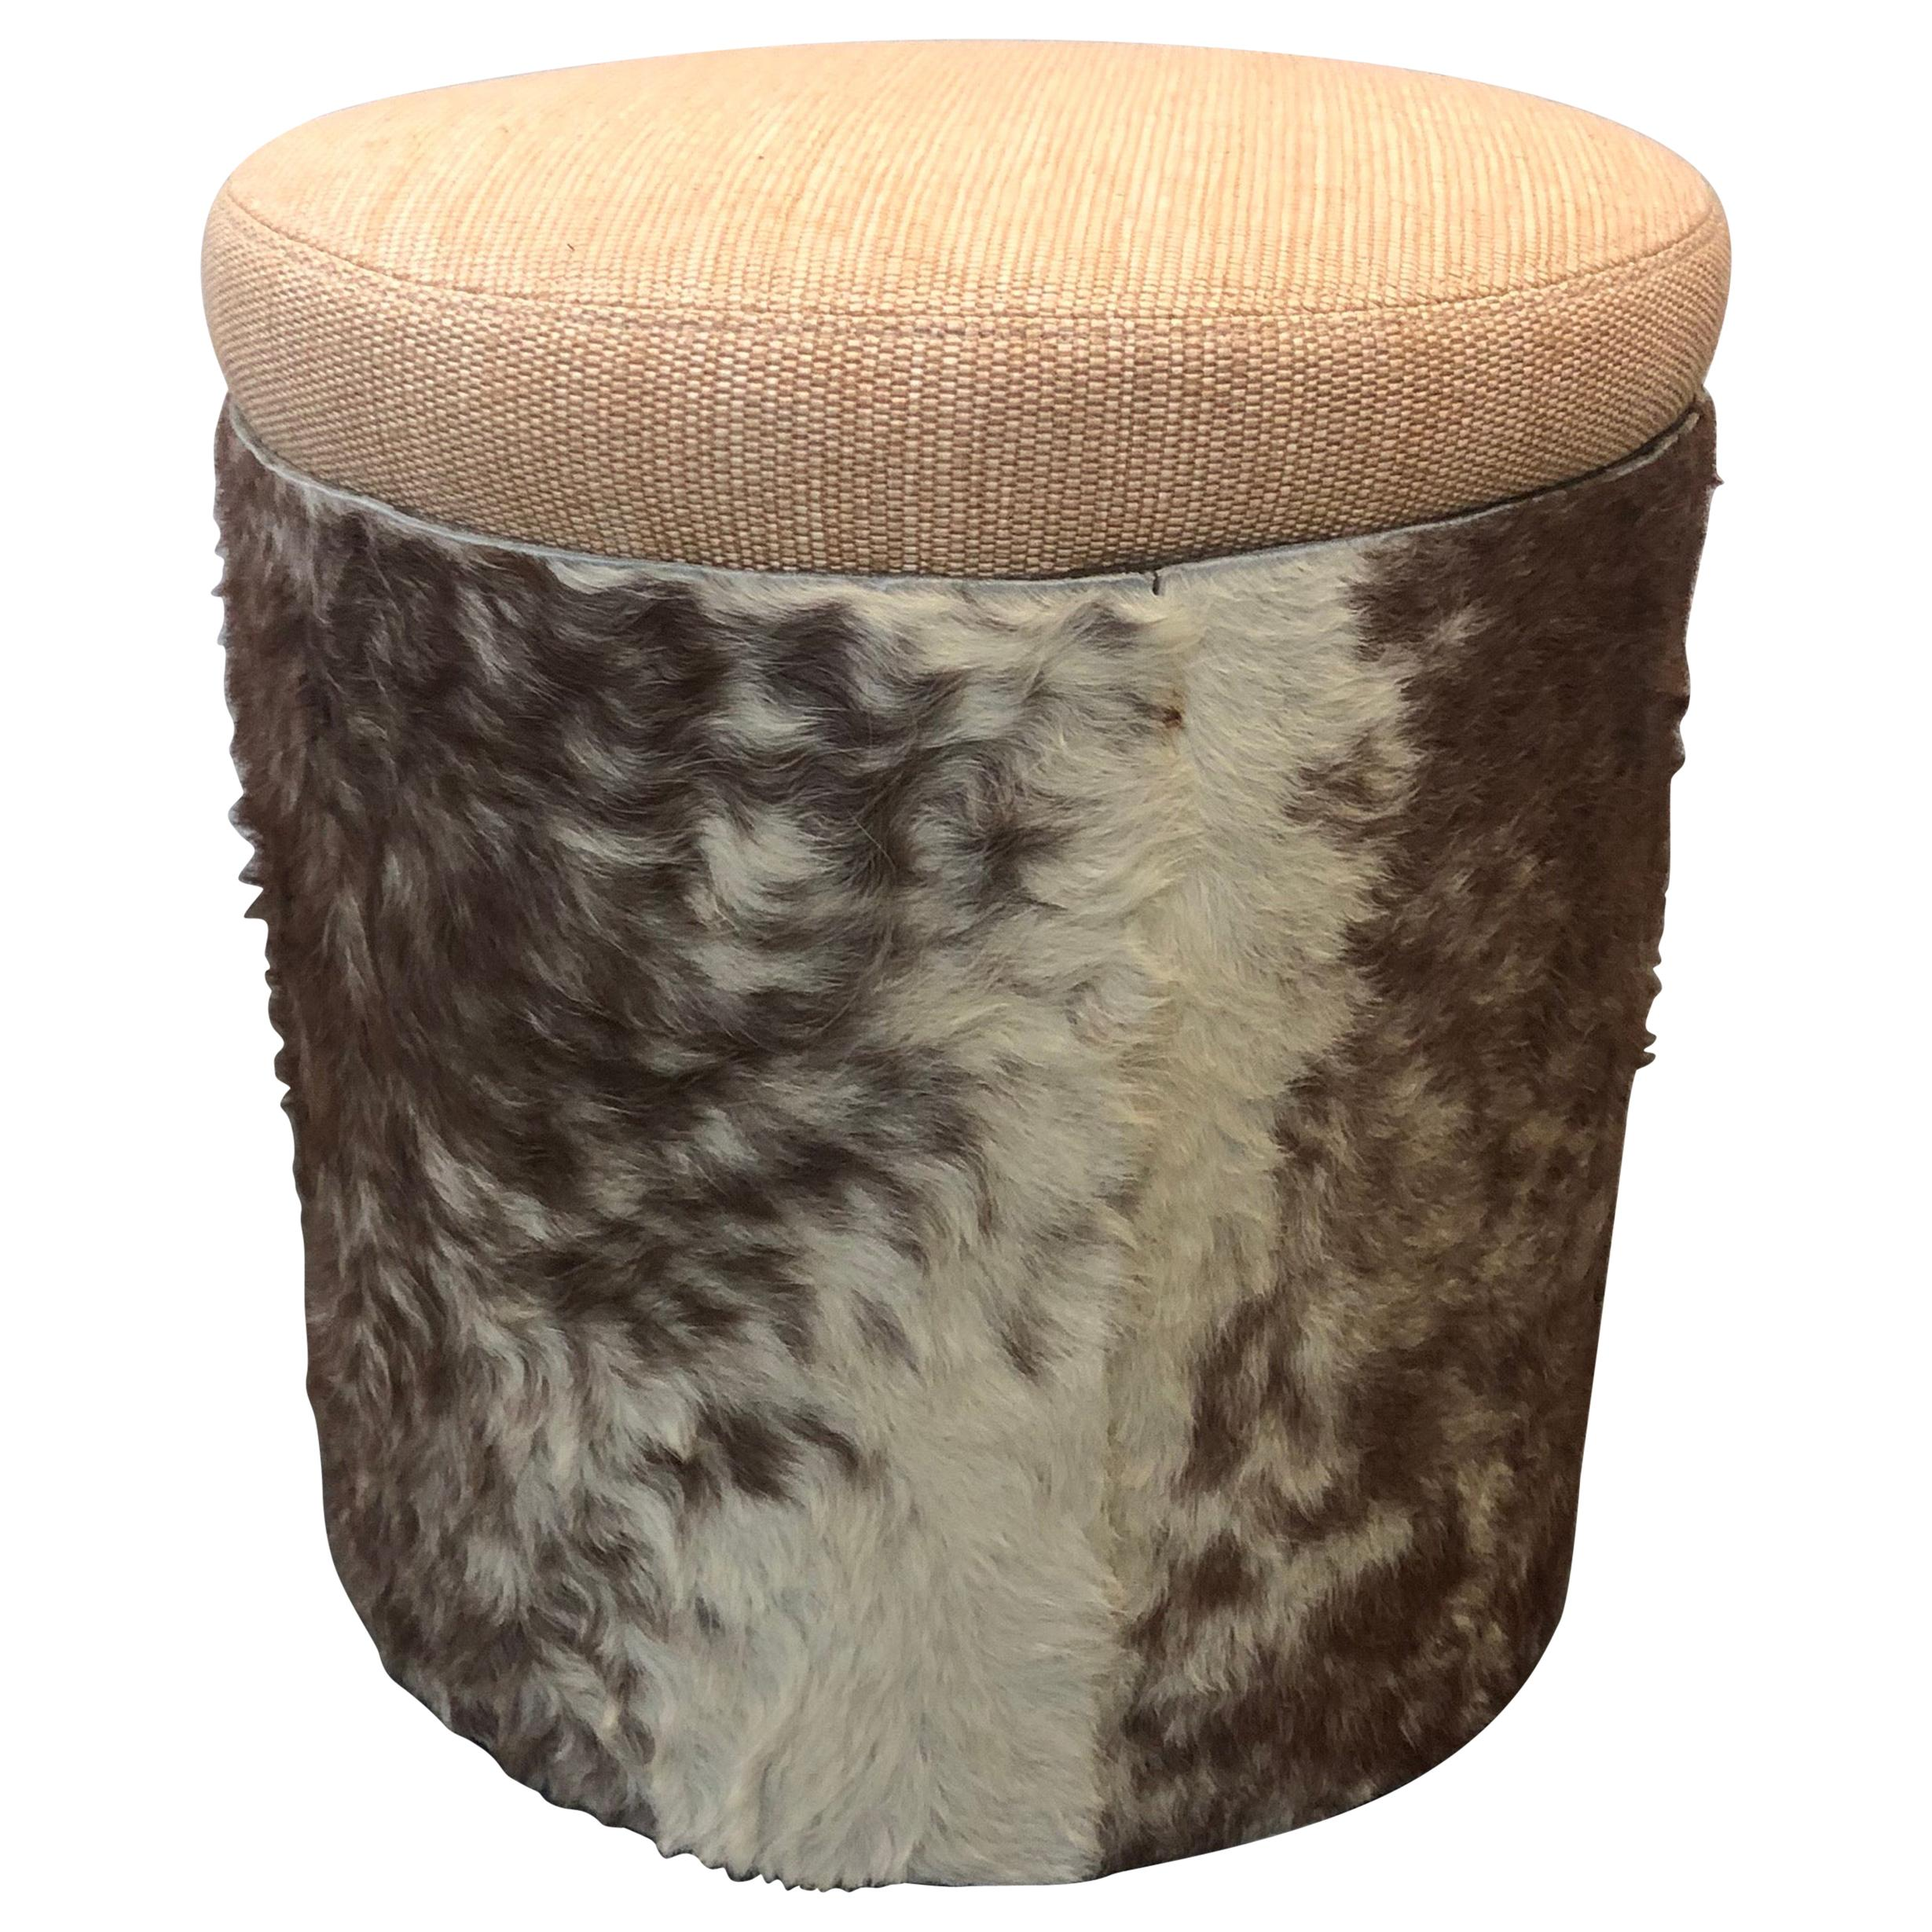 Midcentury Brown and Tan Cowhide Round Stool with Round Seat Cushion